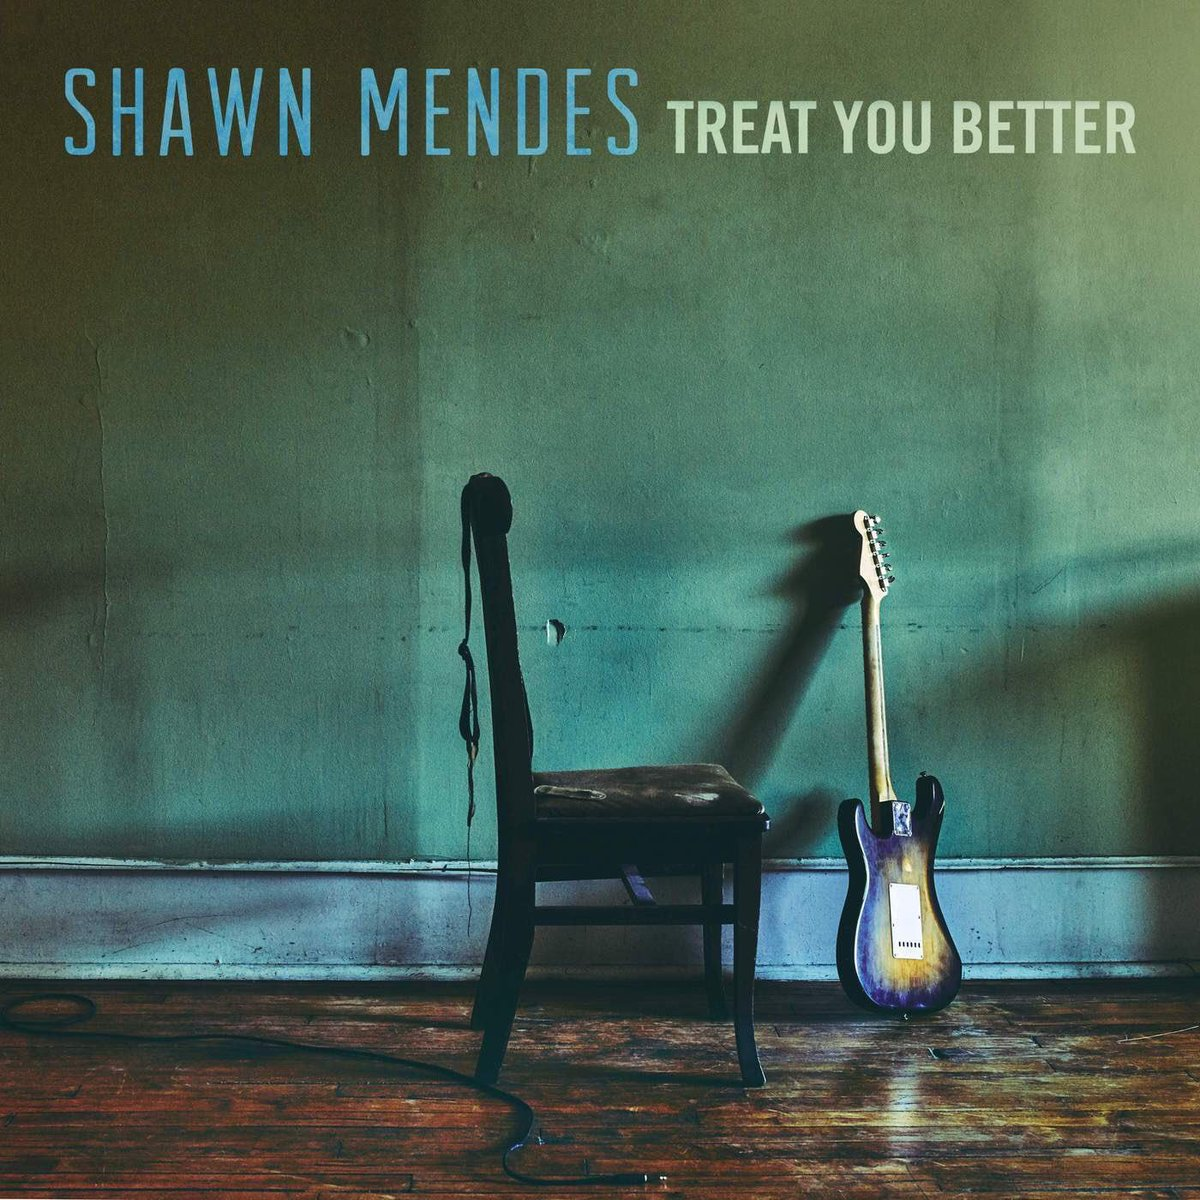 """""""Treat You Better"""" by @ShawnMendes has reached 1 BILLION streams on Spotify. This is his most streamed song on the platform."""